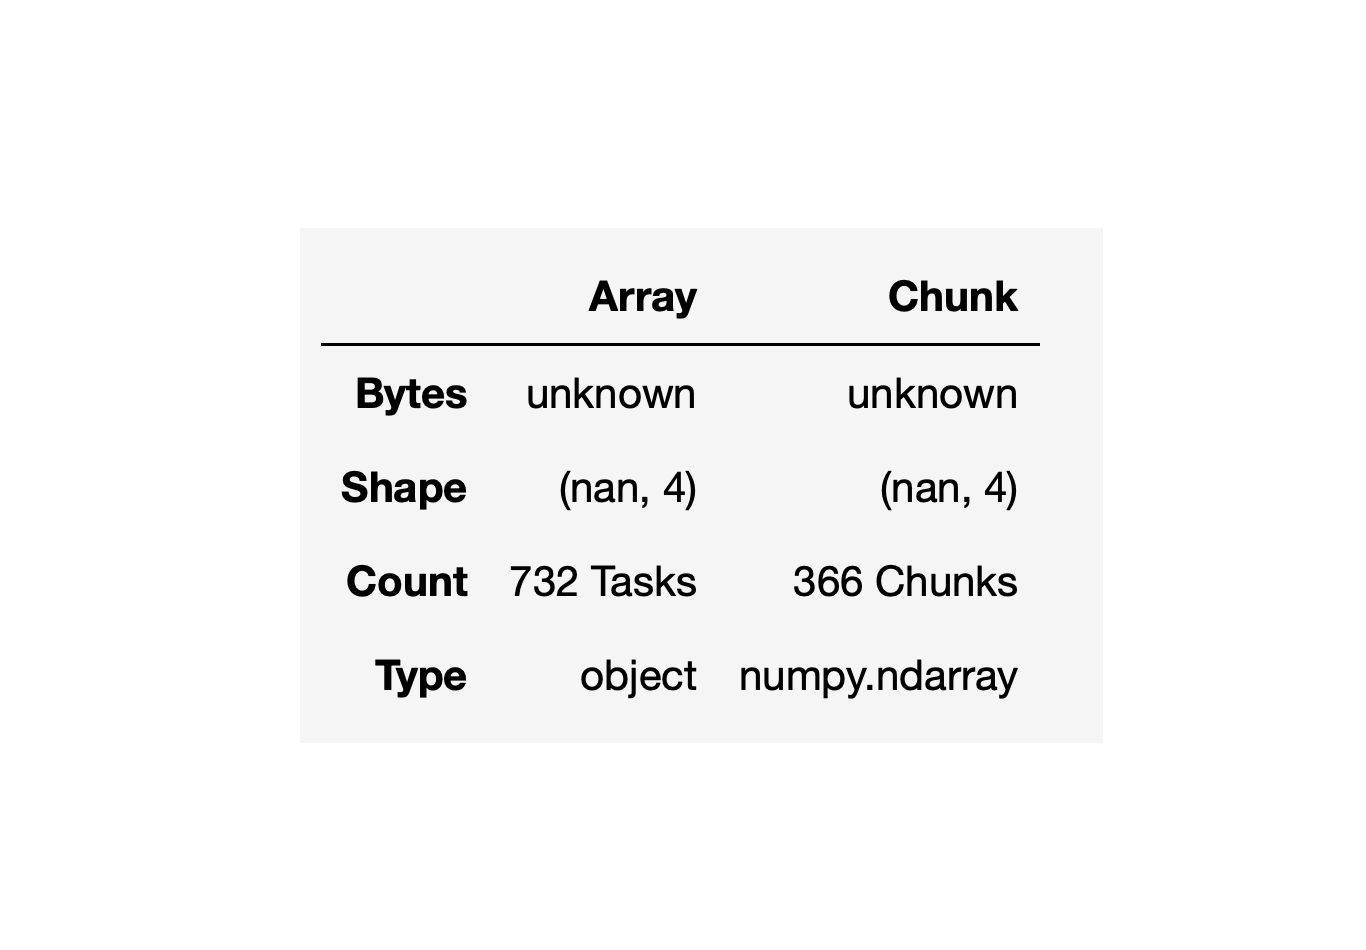 A table showing Array and Chunk as columns and Bytes, Shape, Count, and Type as rows.